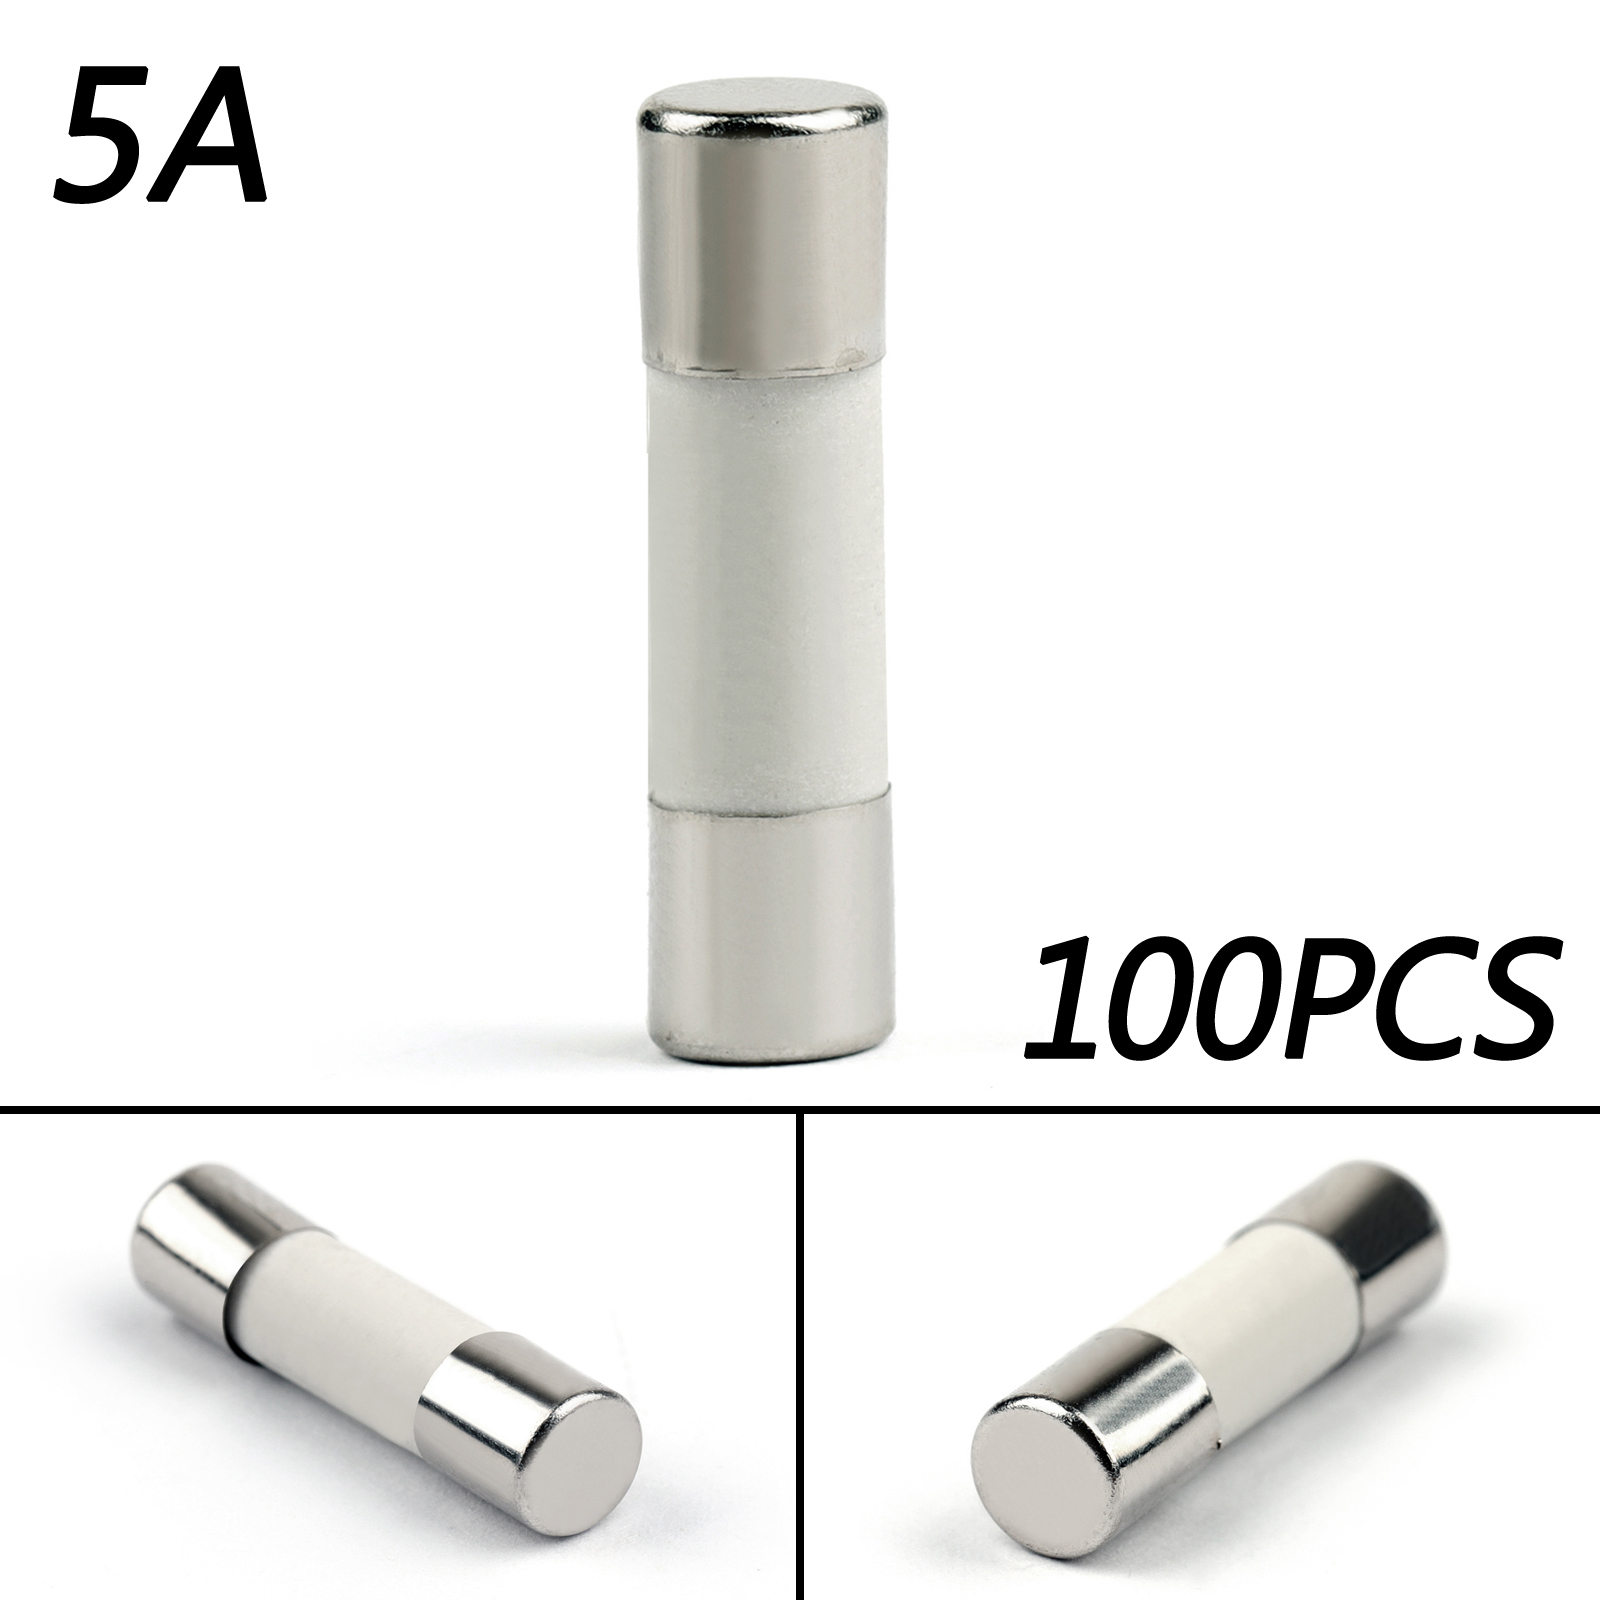 5 Pcs AGC Fuse Holder Inline Screw Shape Cable Fuse Holder AWG Wire 6.3A